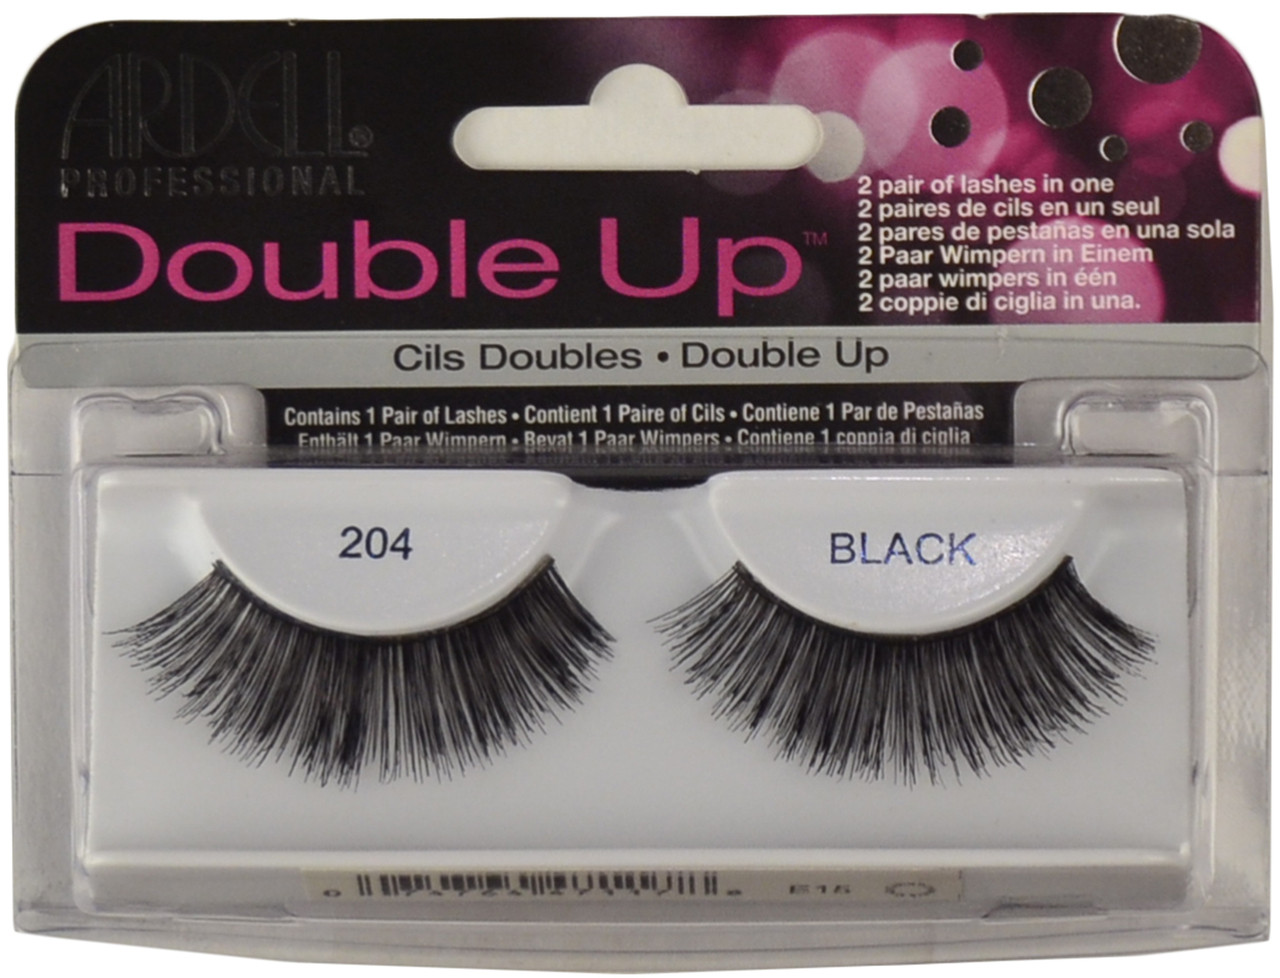 ea7baa8f408 Ardell Lashes Double Up 204 Black Ardell Lashes, Free Shipping at ...